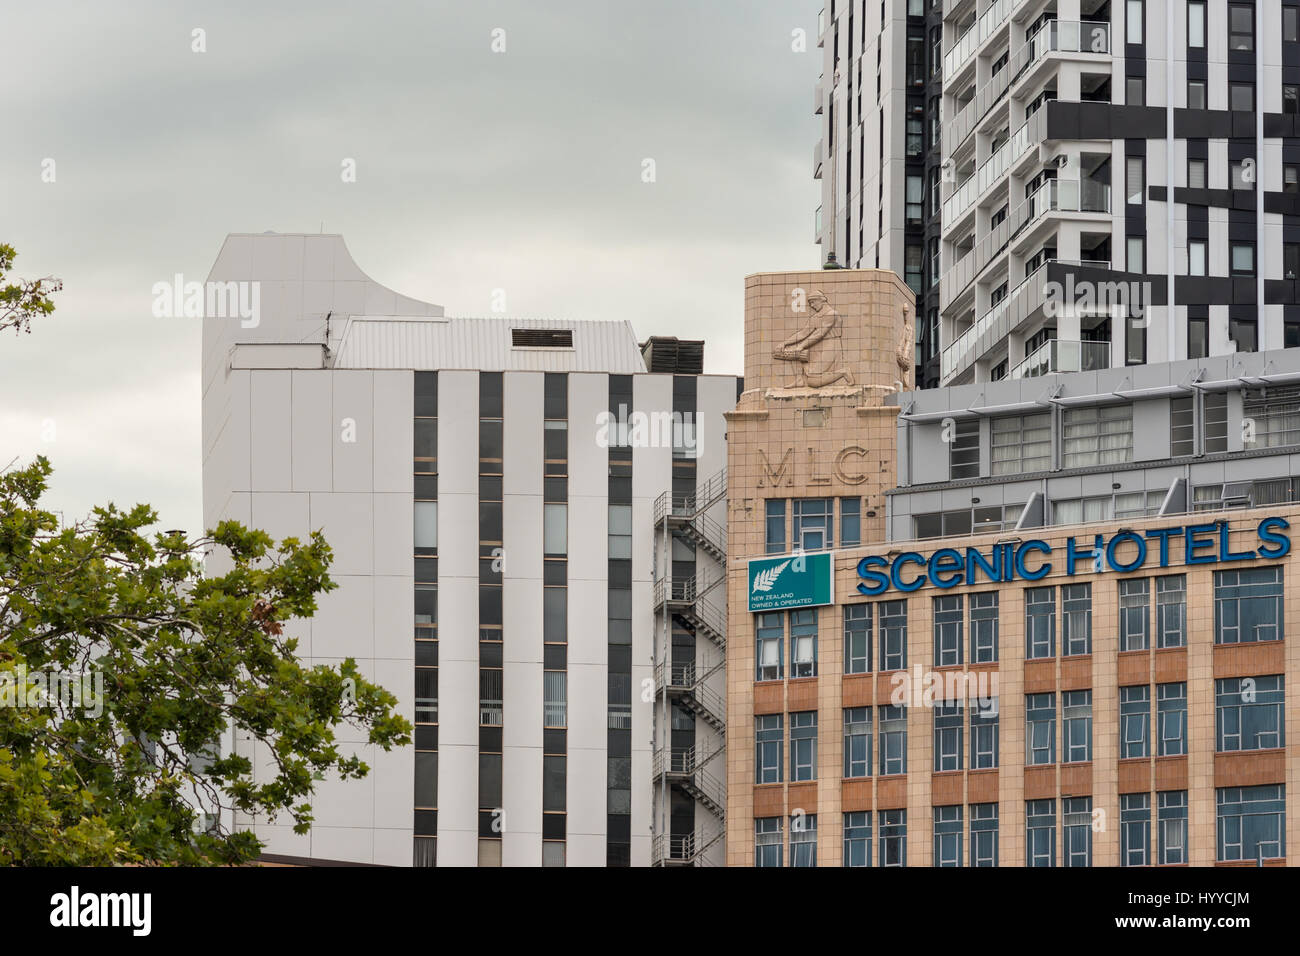 Auckland, New Zealand - March 1, 2017: Detail of Auckland skyline around Scenic Hotels downtown near Civic Center. - Stock Image